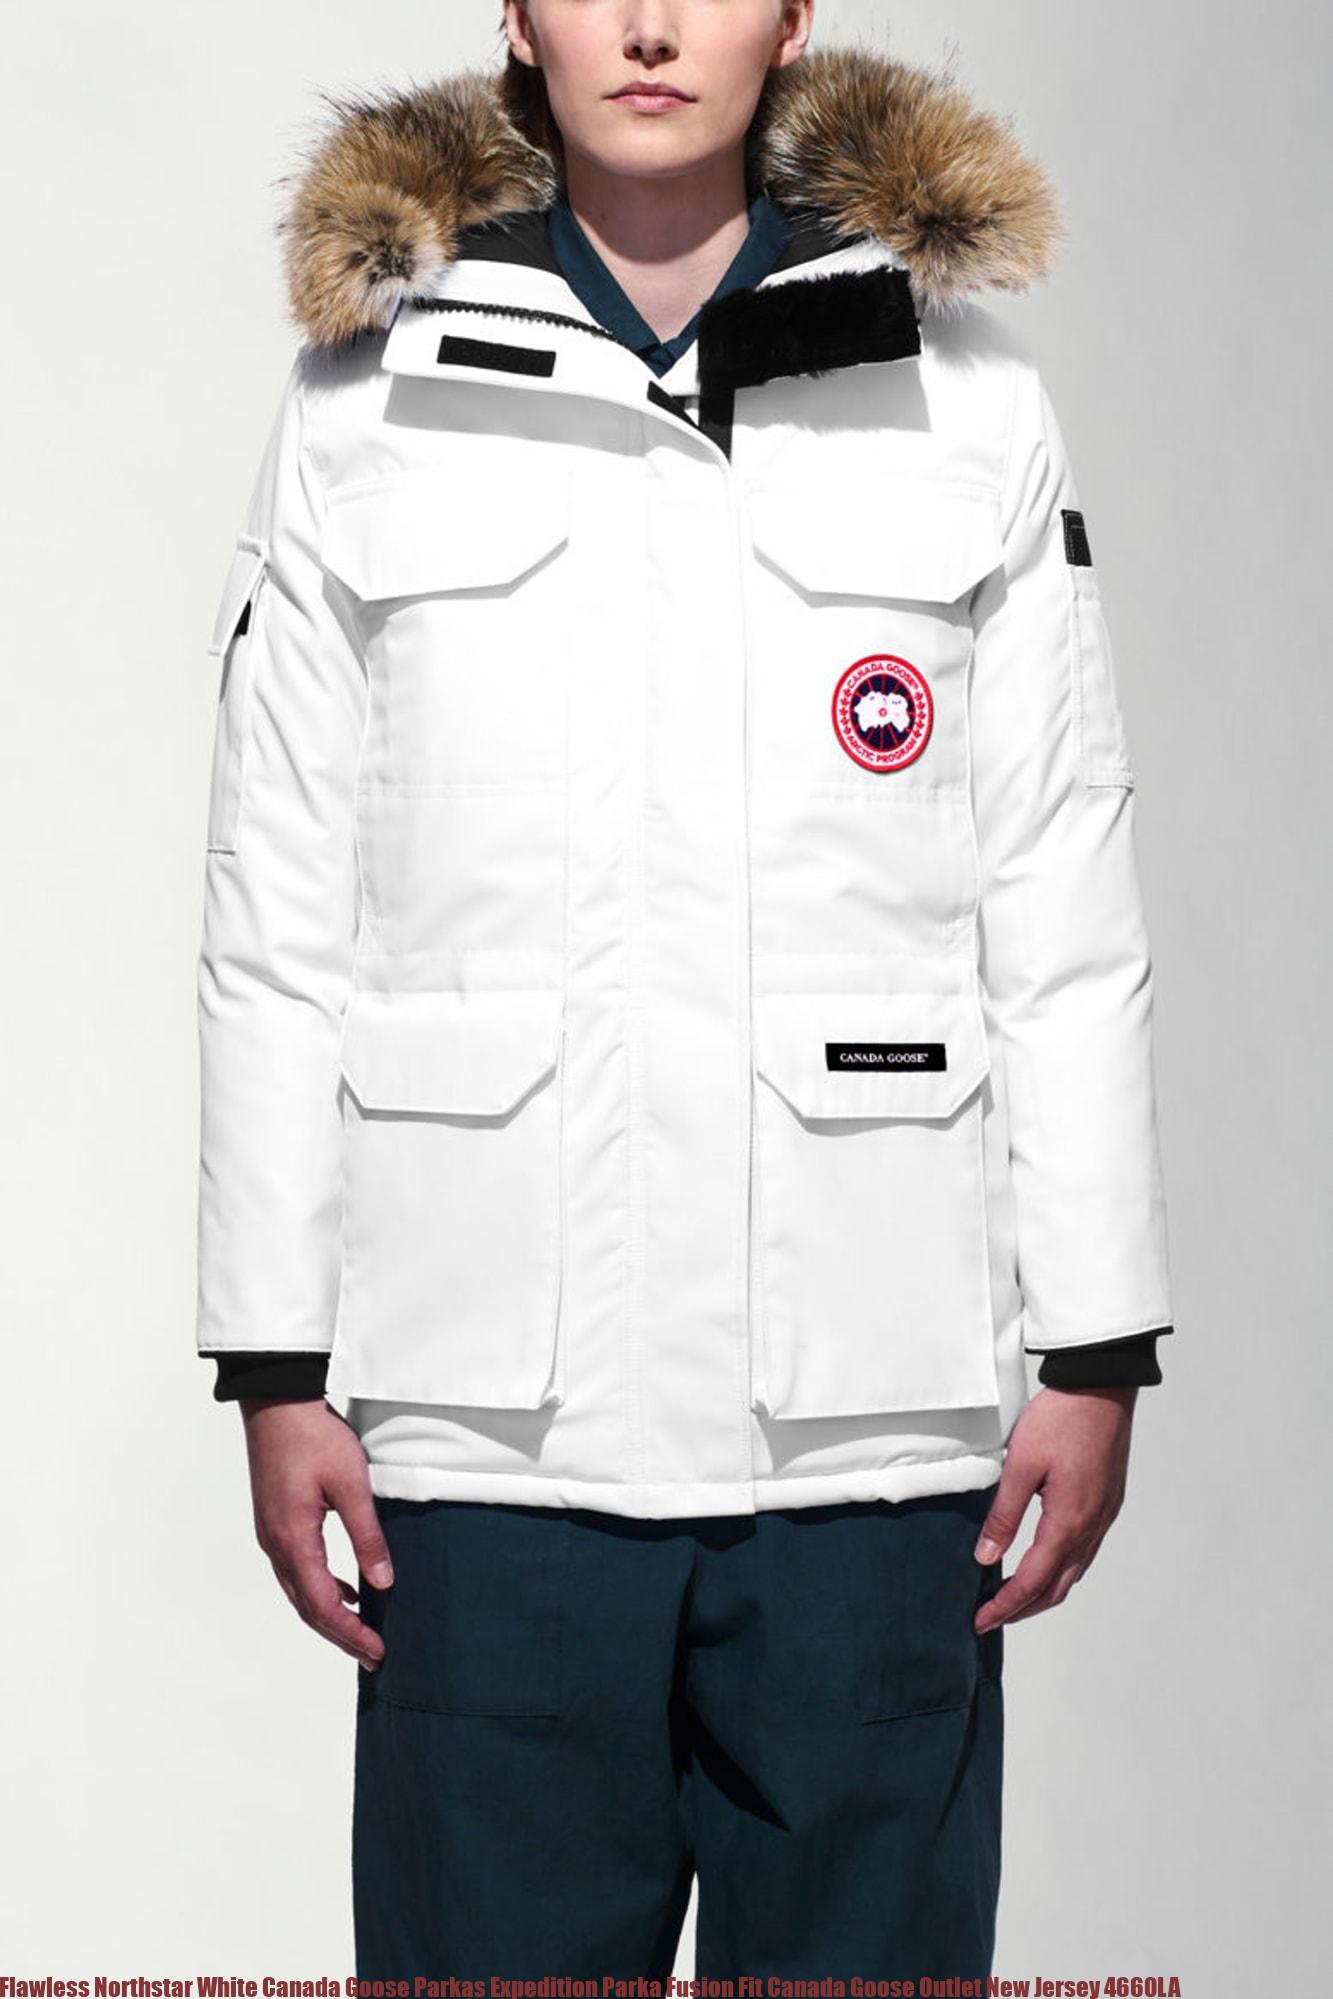 f3013d595fcd Flawless Northstar White Canada Goose Parkas Expedition Parka Fusion Fit Canada  Goose Outlet New Jersey 4660LA – Cheap Canada Goose Sale Jacket